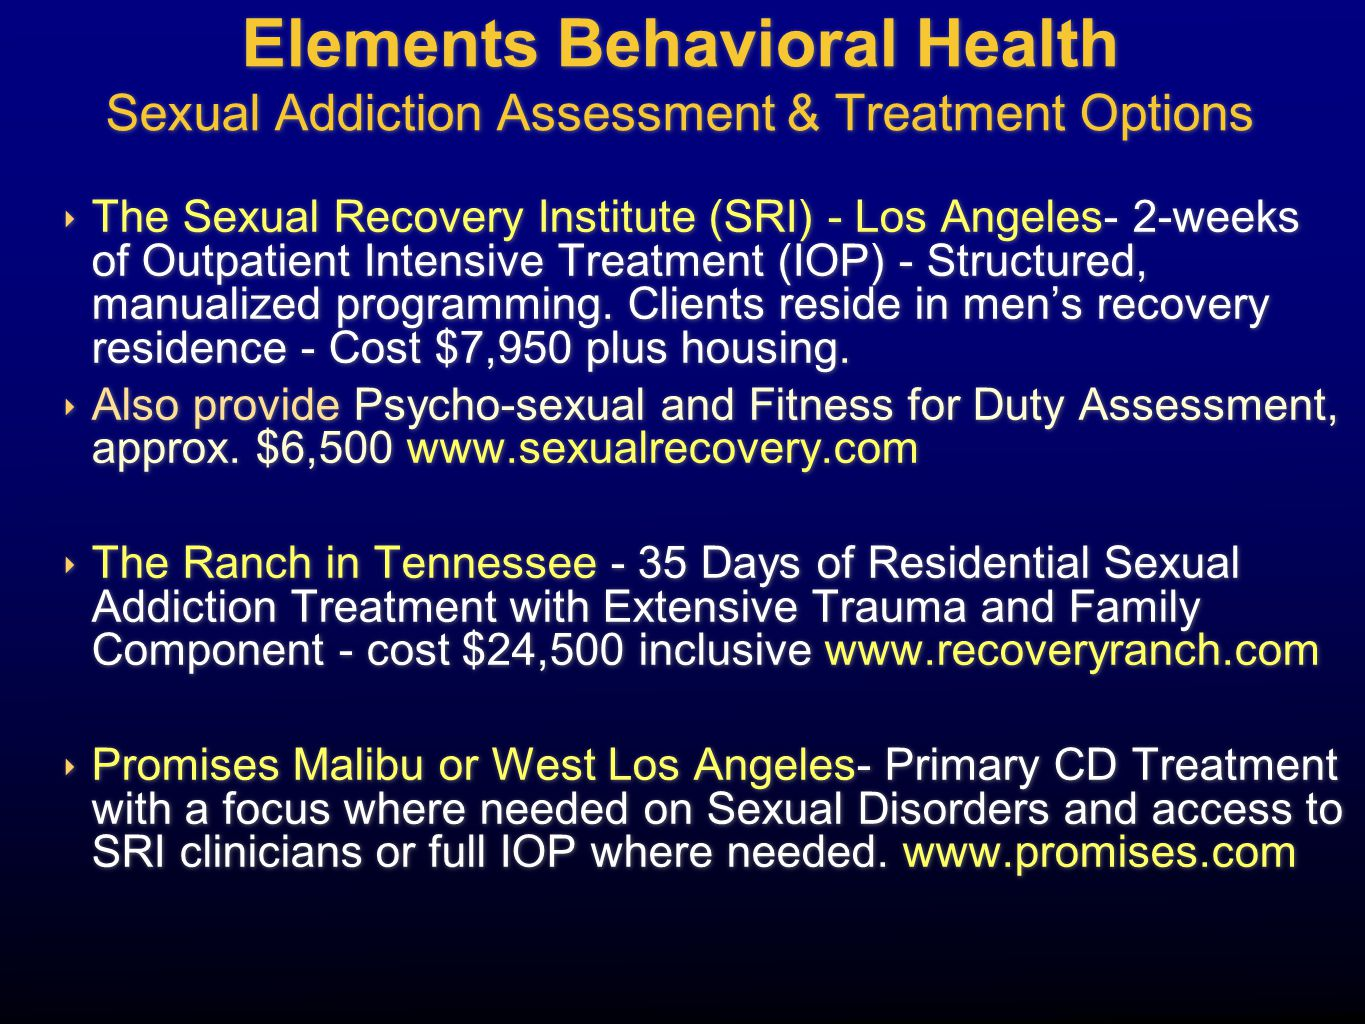 Elements Behavioral Health Sexual Addiction Assessment & Treatment Options ‣ The Sexual Recovery Institute (SRI) - Los Angeles- 2-weeks of Outpatient